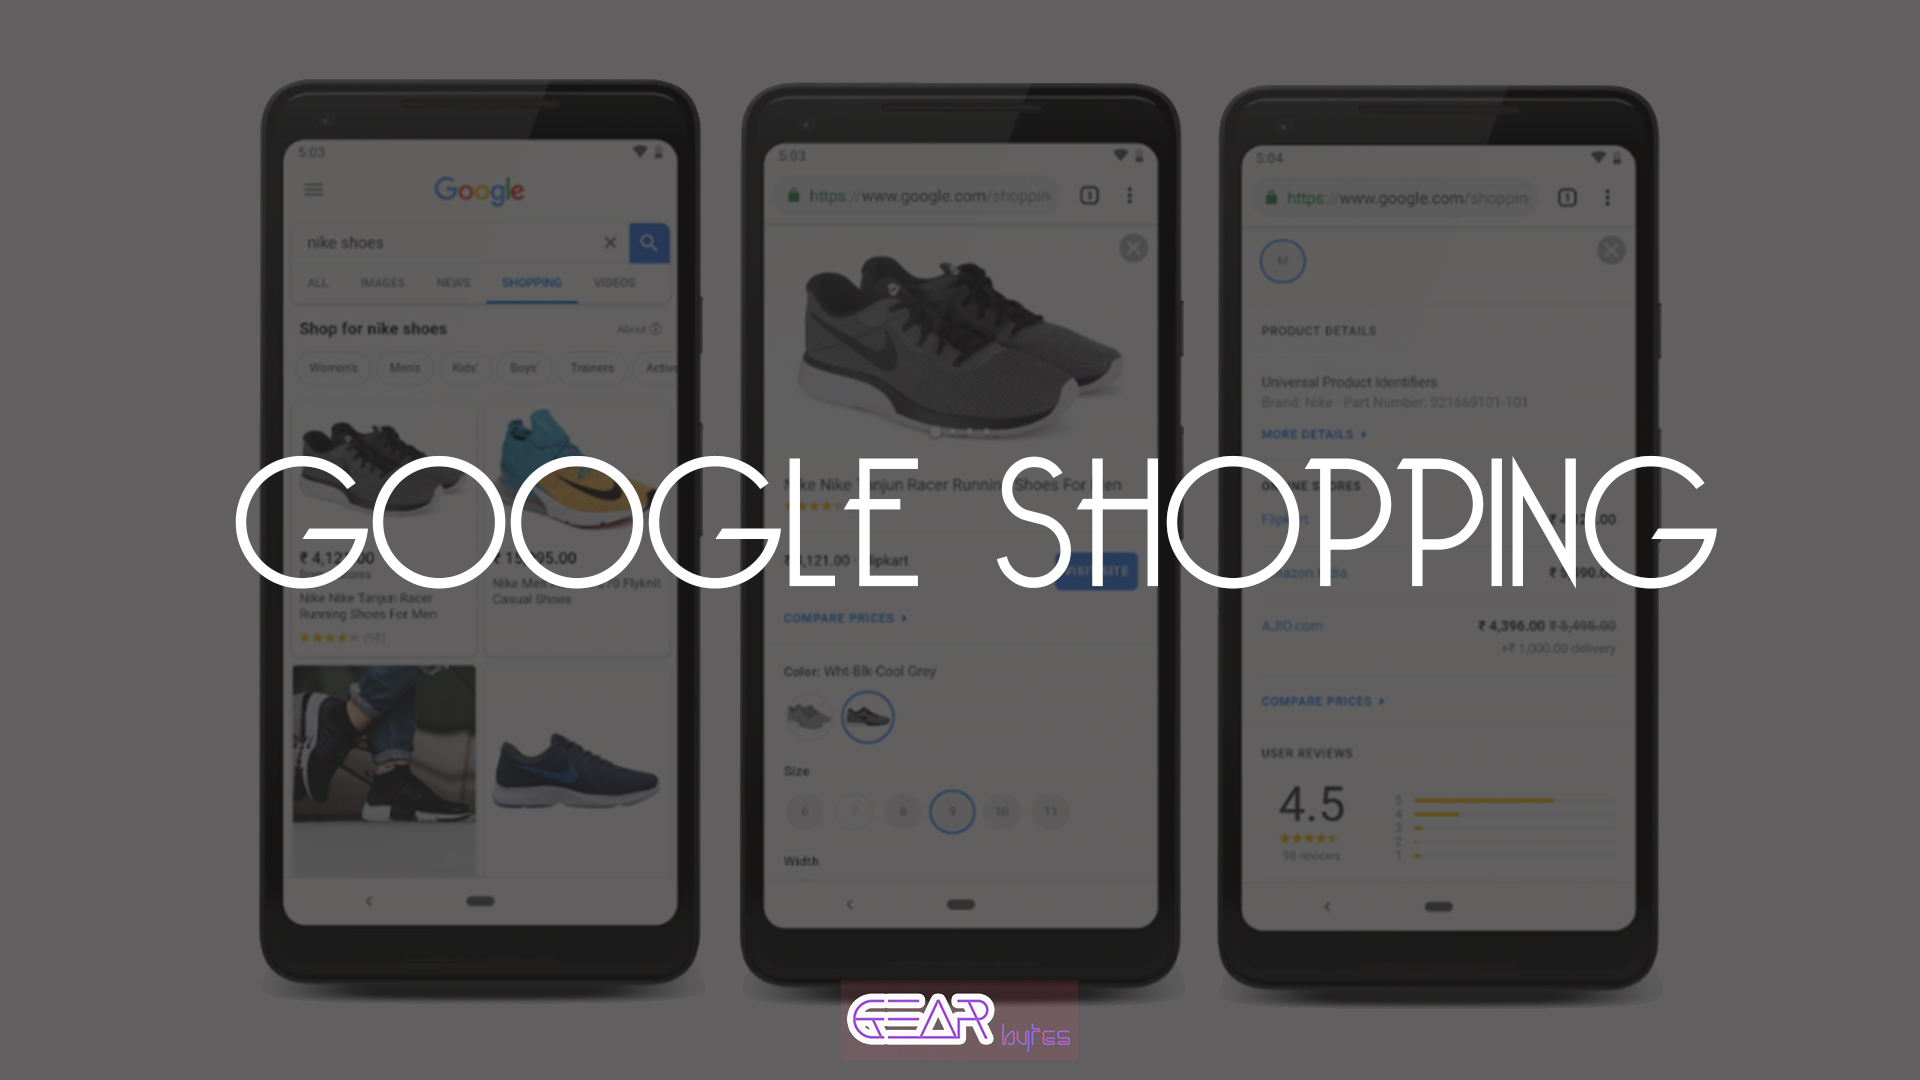 Google Shopping launched in India, gives new search